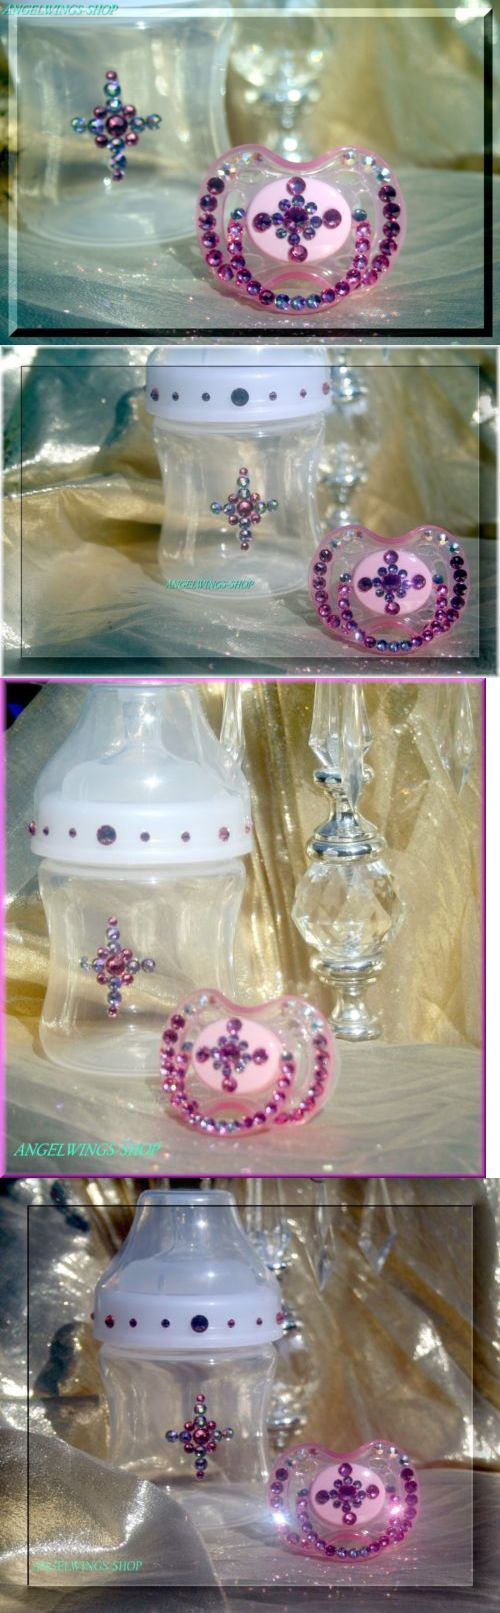 Pacifiers and Soothers 32872: Baby Shower Gifts Pacifier Baby Bottle Baptism Set Swarovski -> BUY IT NOW ONLY: $65 on eBay!